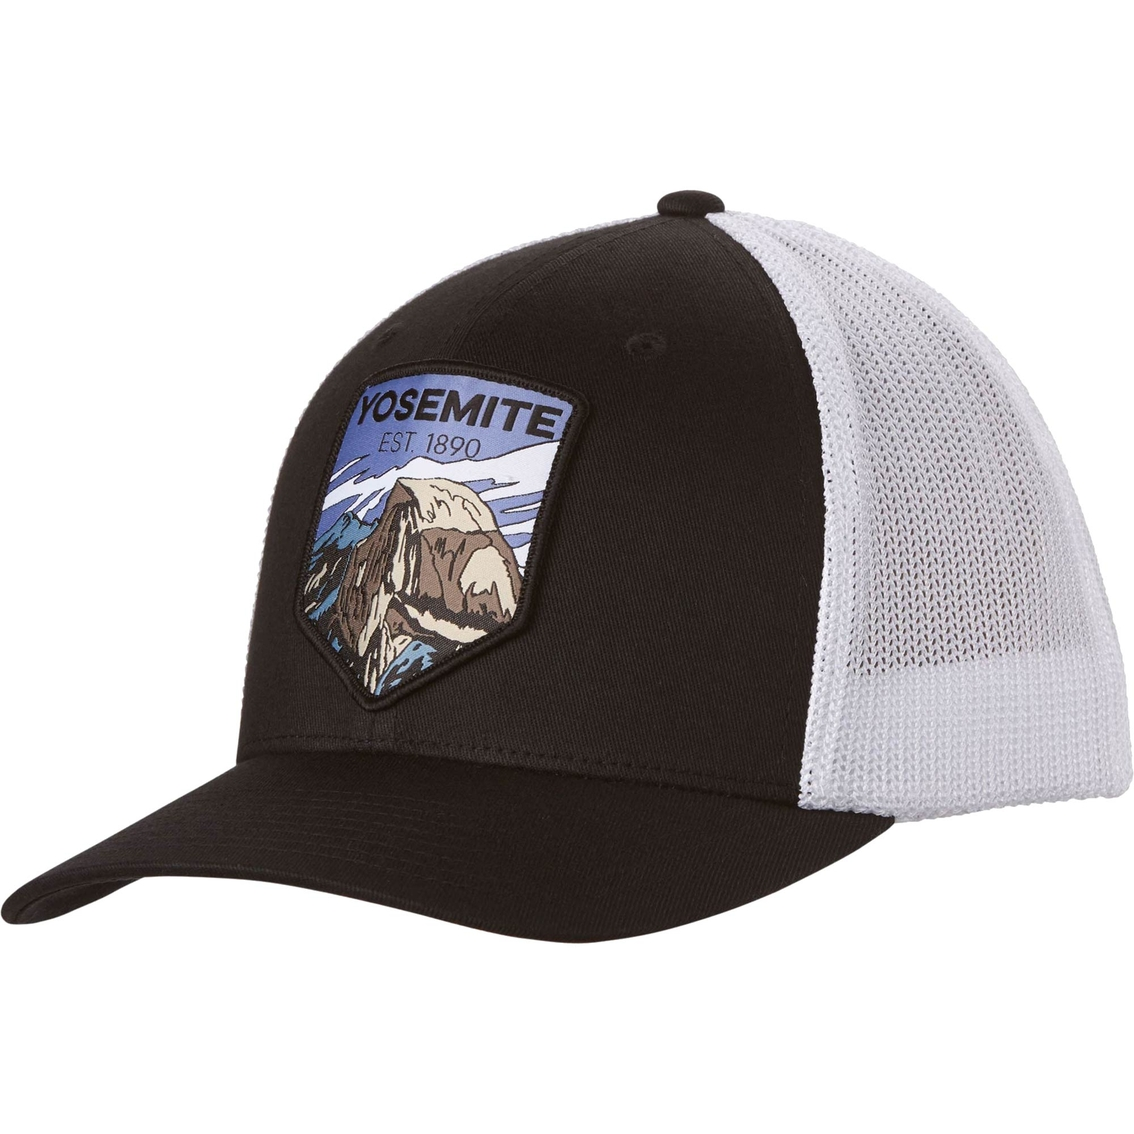 a83e7061872 Columbia National Parks Mesh Hat